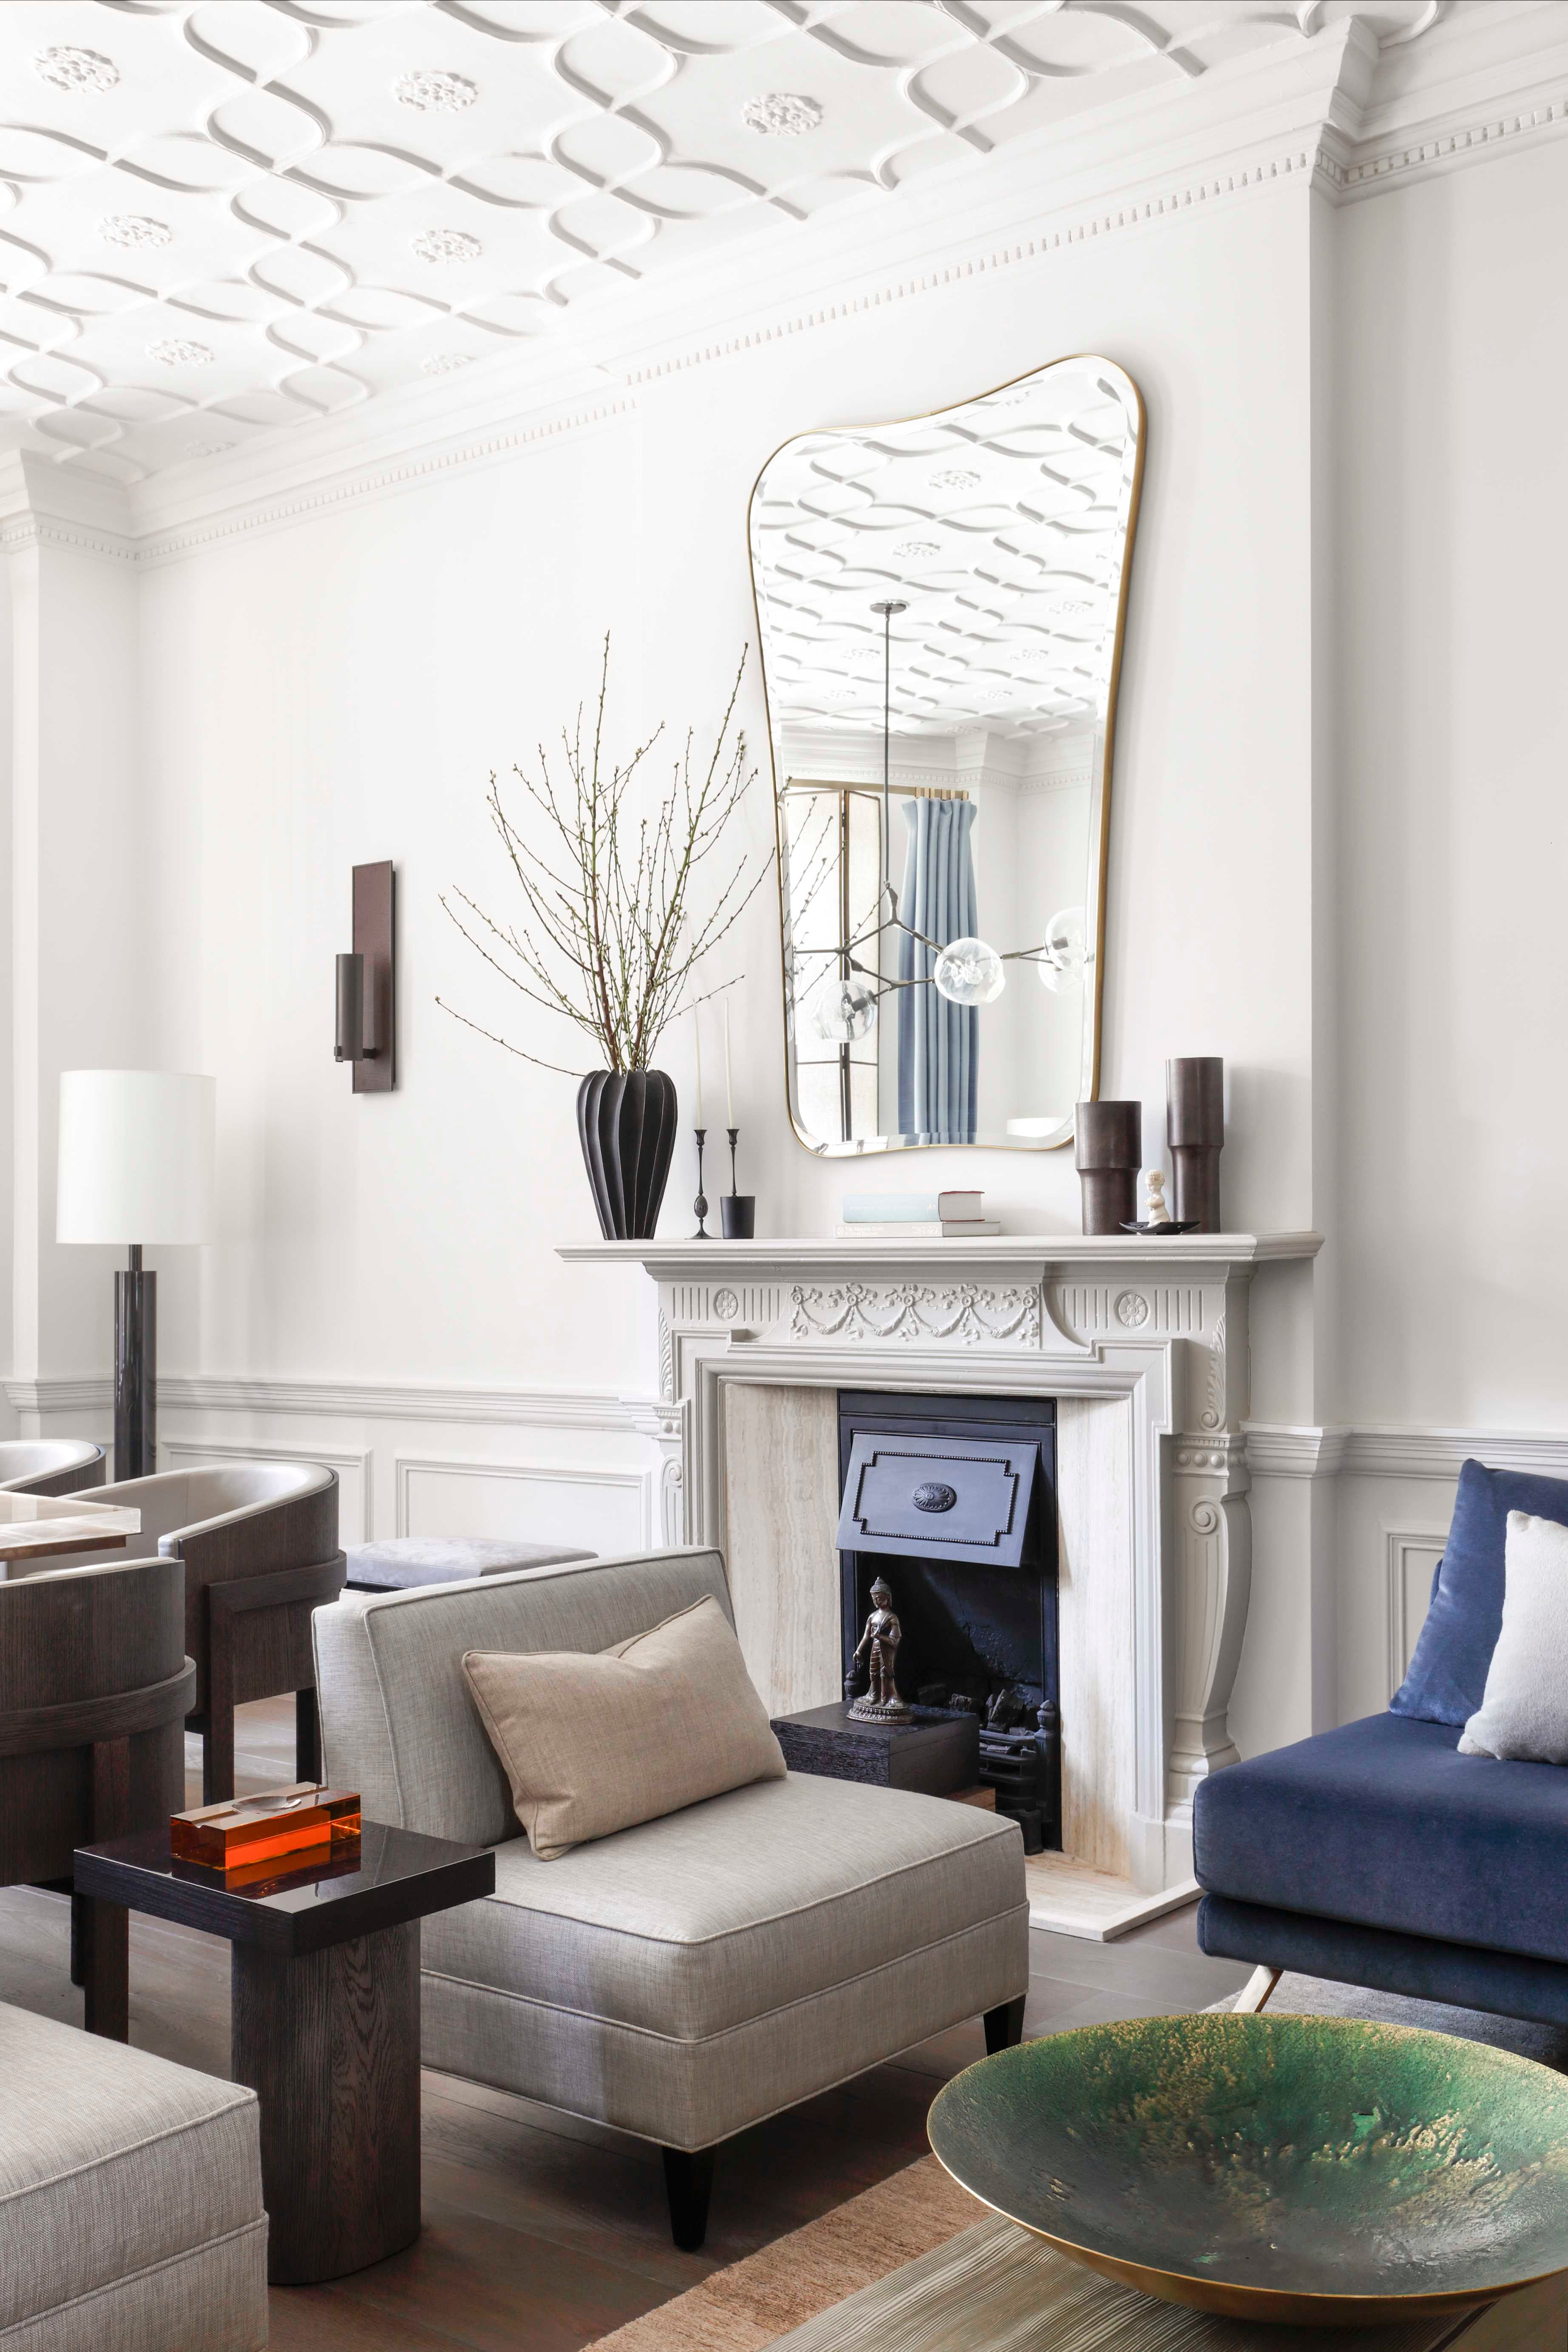 Surprising Kensington House By Janine Stone Co On 1Stdibs Download Free Architecture Designs Rallybritishbridgeorg